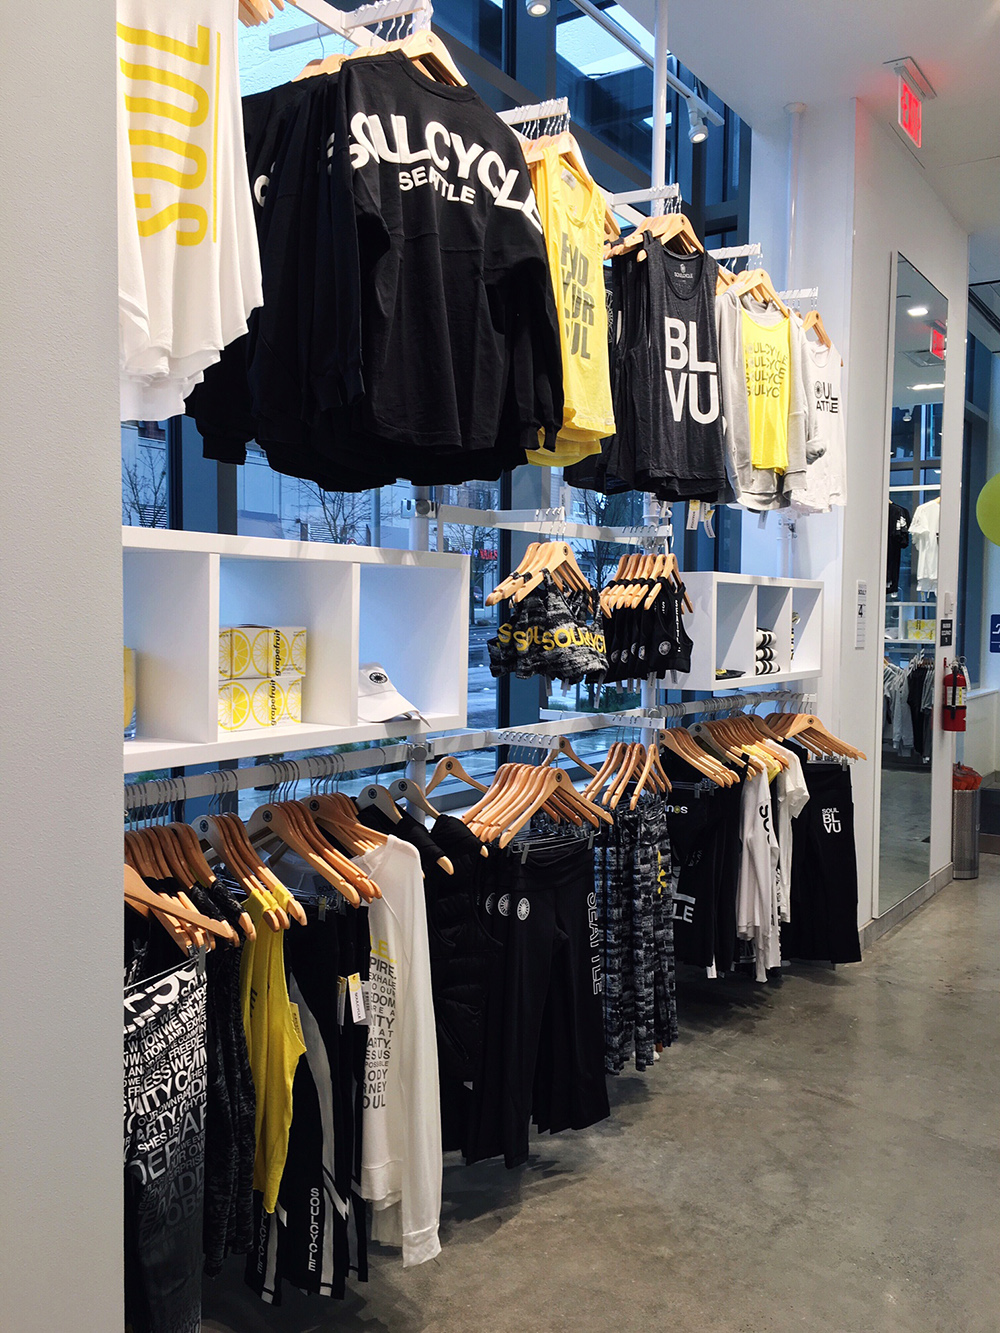 SoulCycle BLVU gear - Ride till You're High at SoulCycle BLVU | Style and Cheek